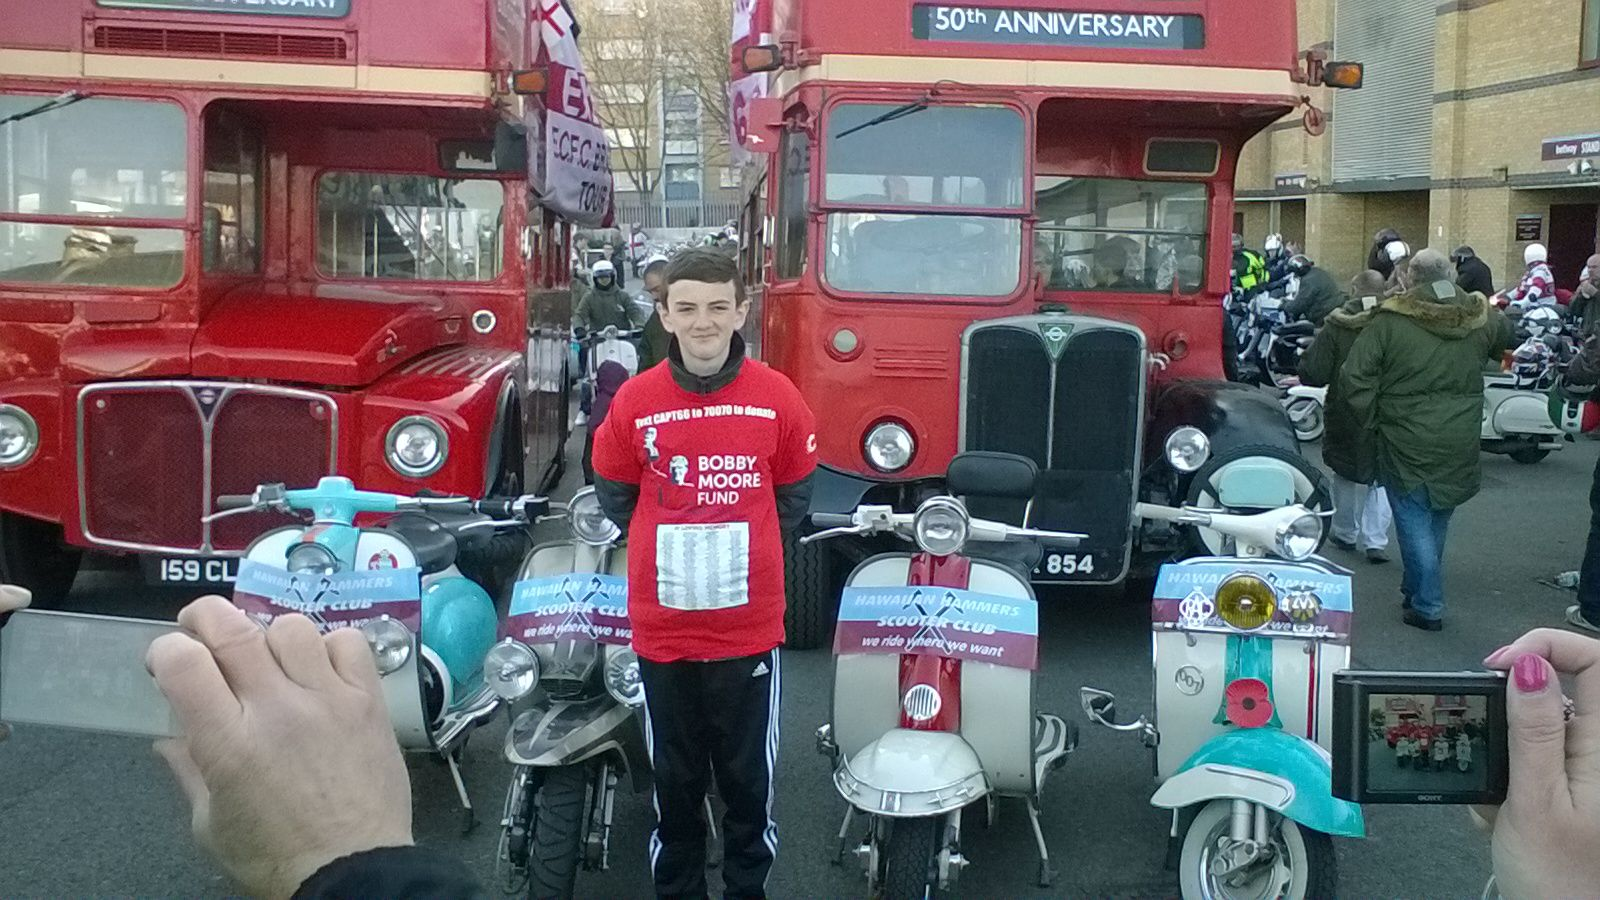 Jonjo Heurman at West Ham United Ground starting his final leg to Wembley.